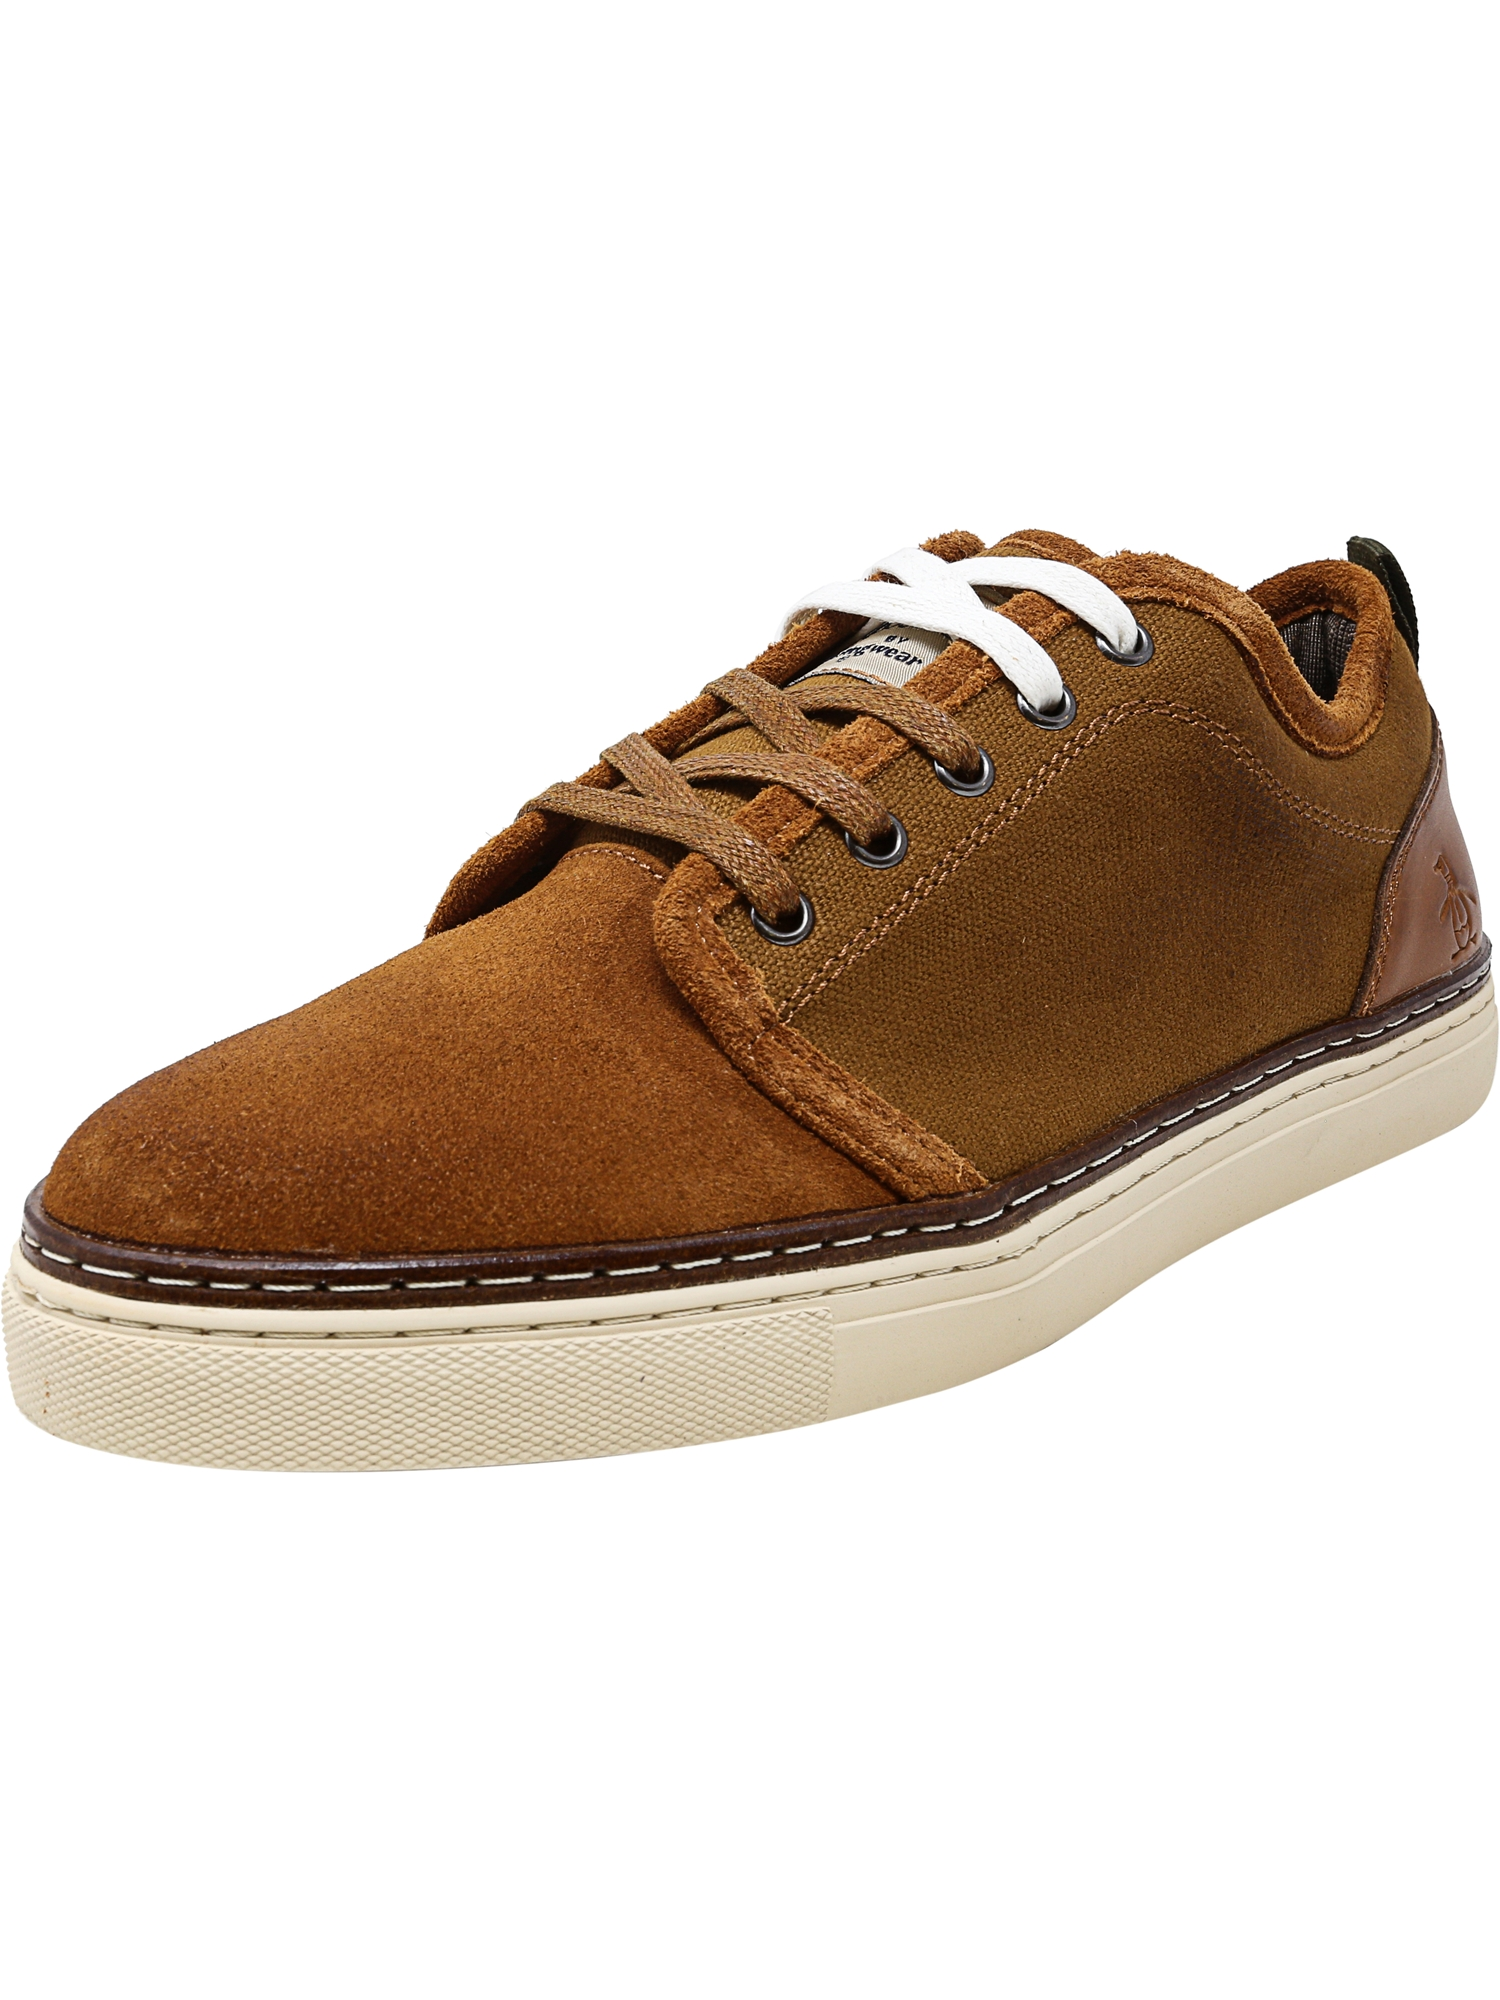 Original Penguin Men's Carlin Cognac Ankle-High Leather Fashion Sneaker - 10M